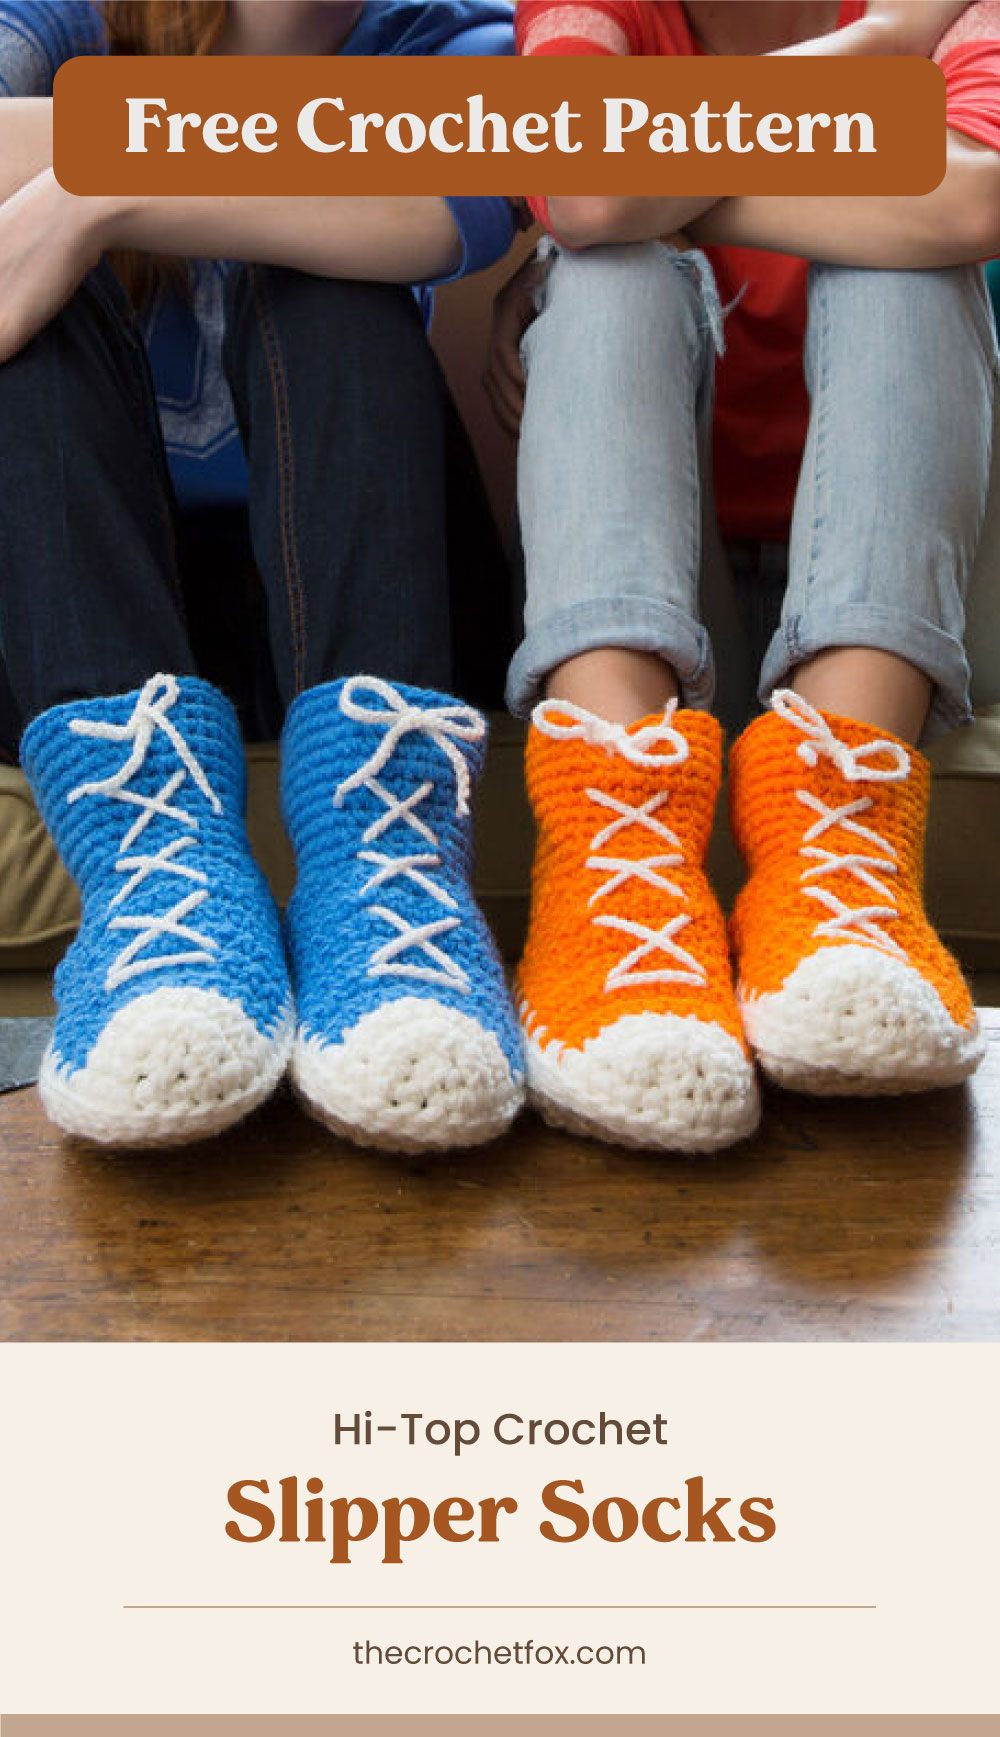 """Text area which says """"Free Crochet Pattern"""" next to two pairs of feet on a table wearing a blue and orange crochet slippers that are sneakers-inspired followed by another text area which says """"Hi-Top Crochet Slipper Socks, thecrochetfox.com"""""""